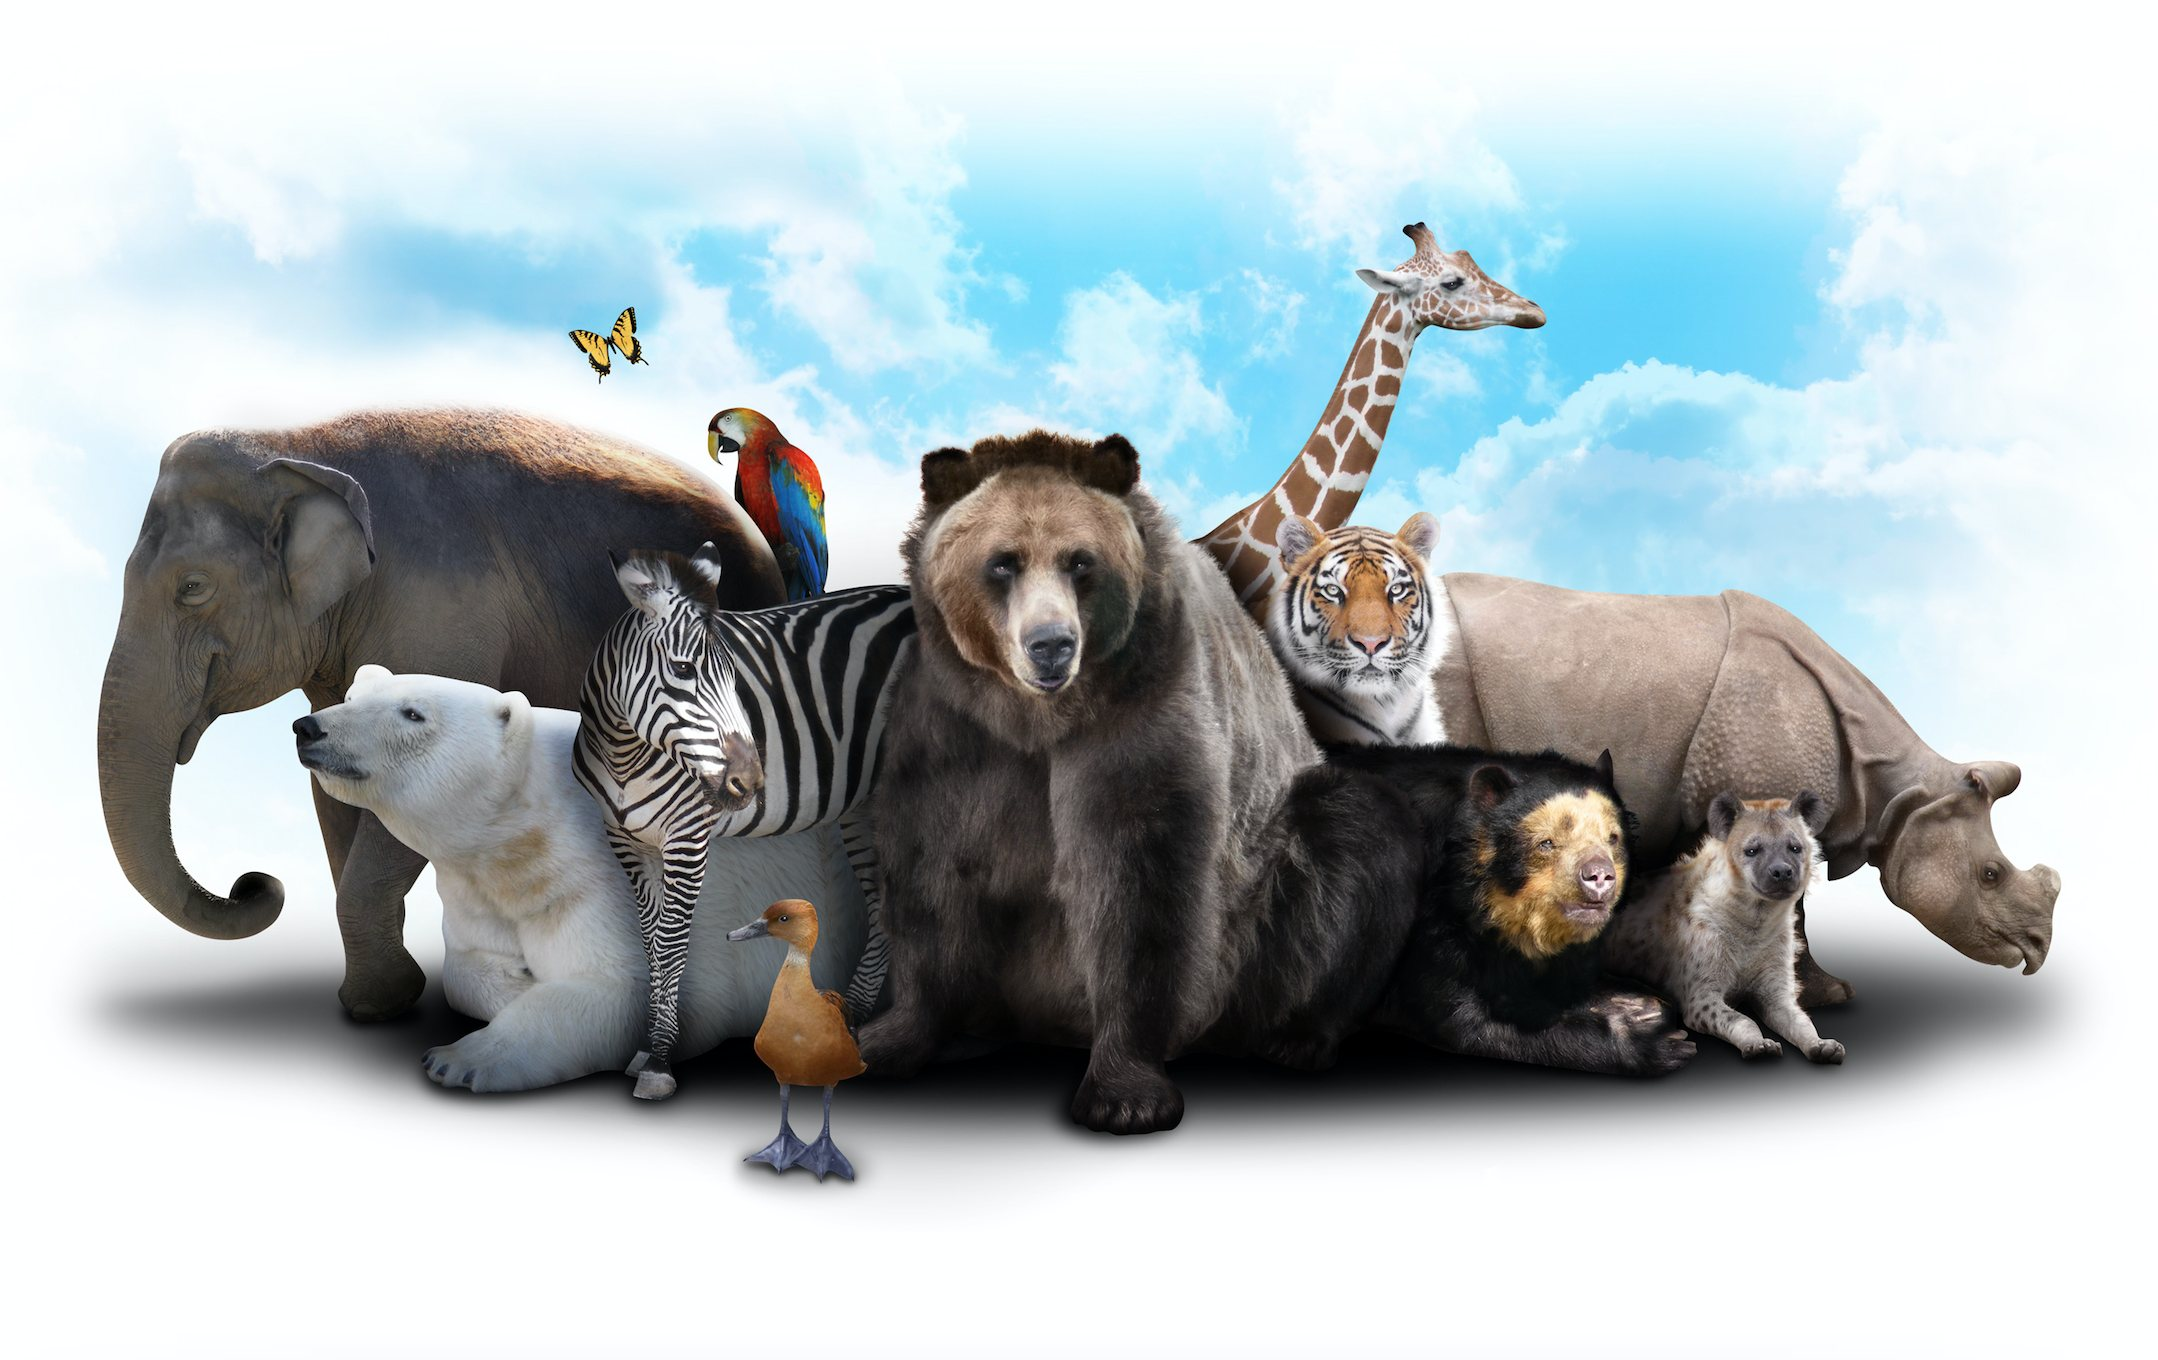 A bear, giraffe, duck, polar bear, rhino, elephant, tiger, parrot, butterfly